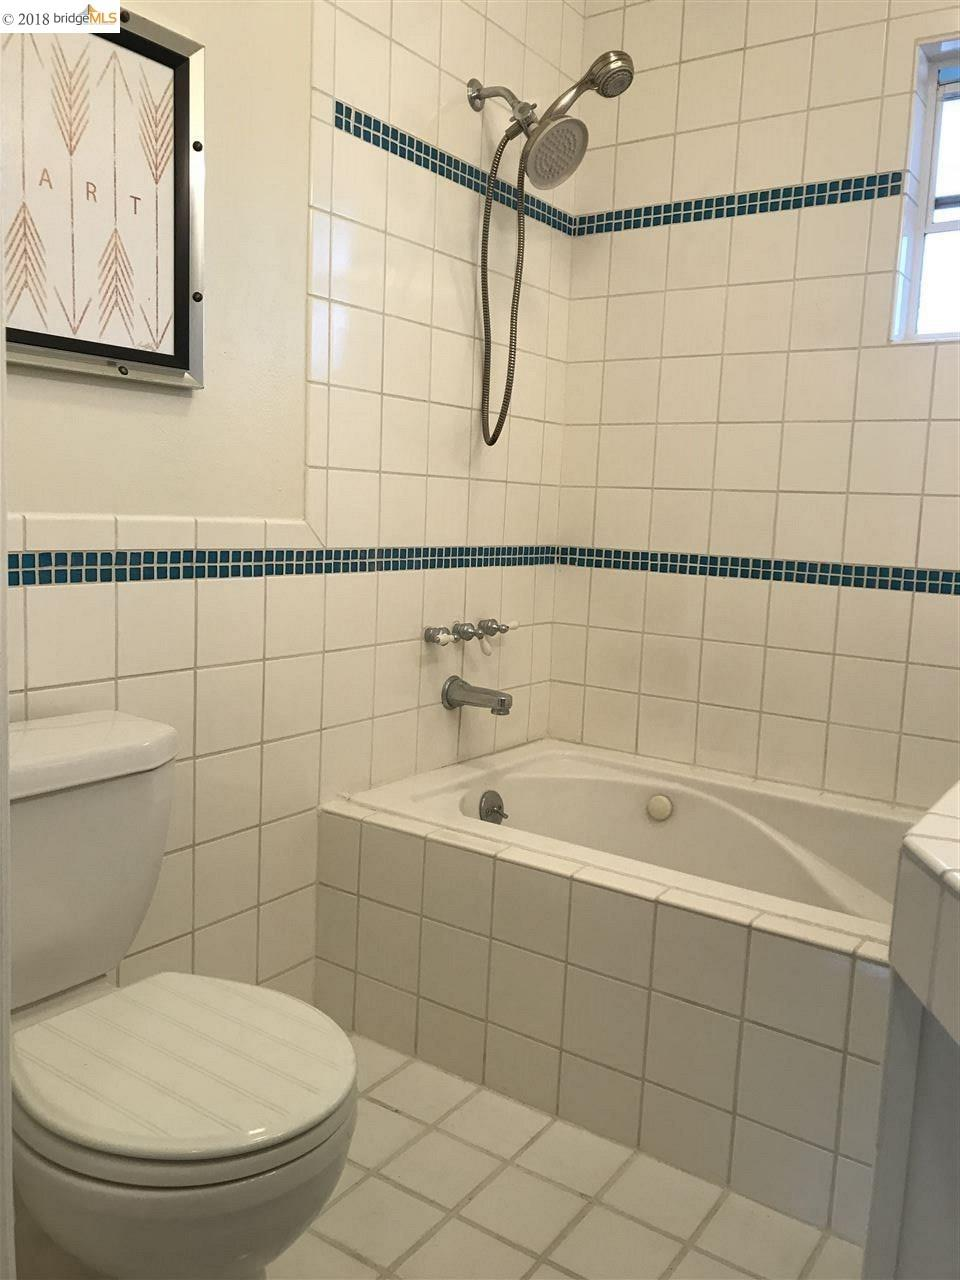 Additional photo for property listing at 3419 Maple Avenue 3419 Maple Avenue Oakland, Californie 94602 États-Unis